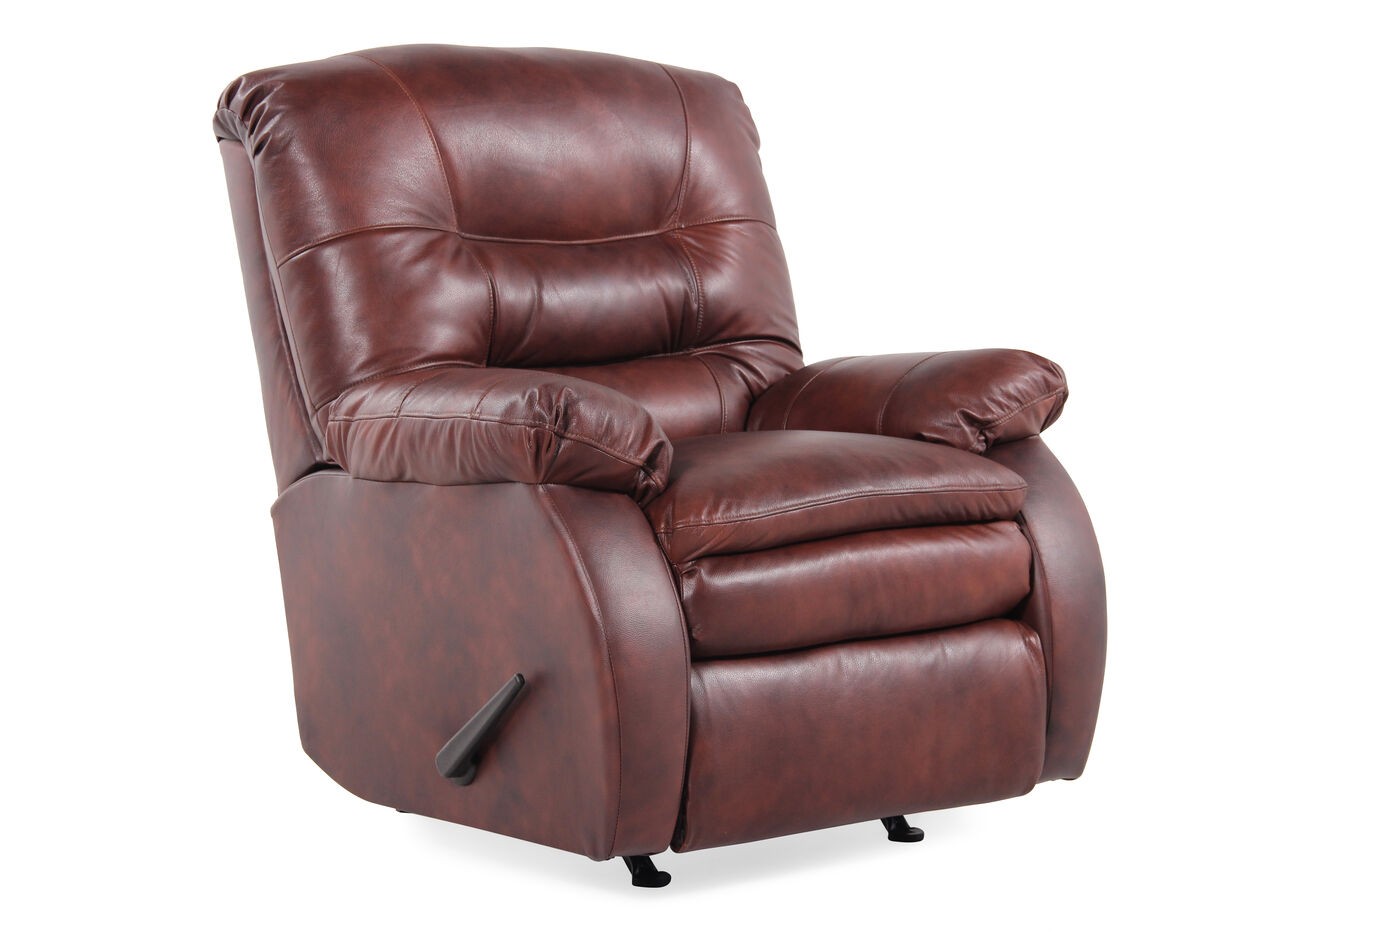 Lane zero gravity laredo bark rocking recliner mathis brothers furniture for Living room with two recliners